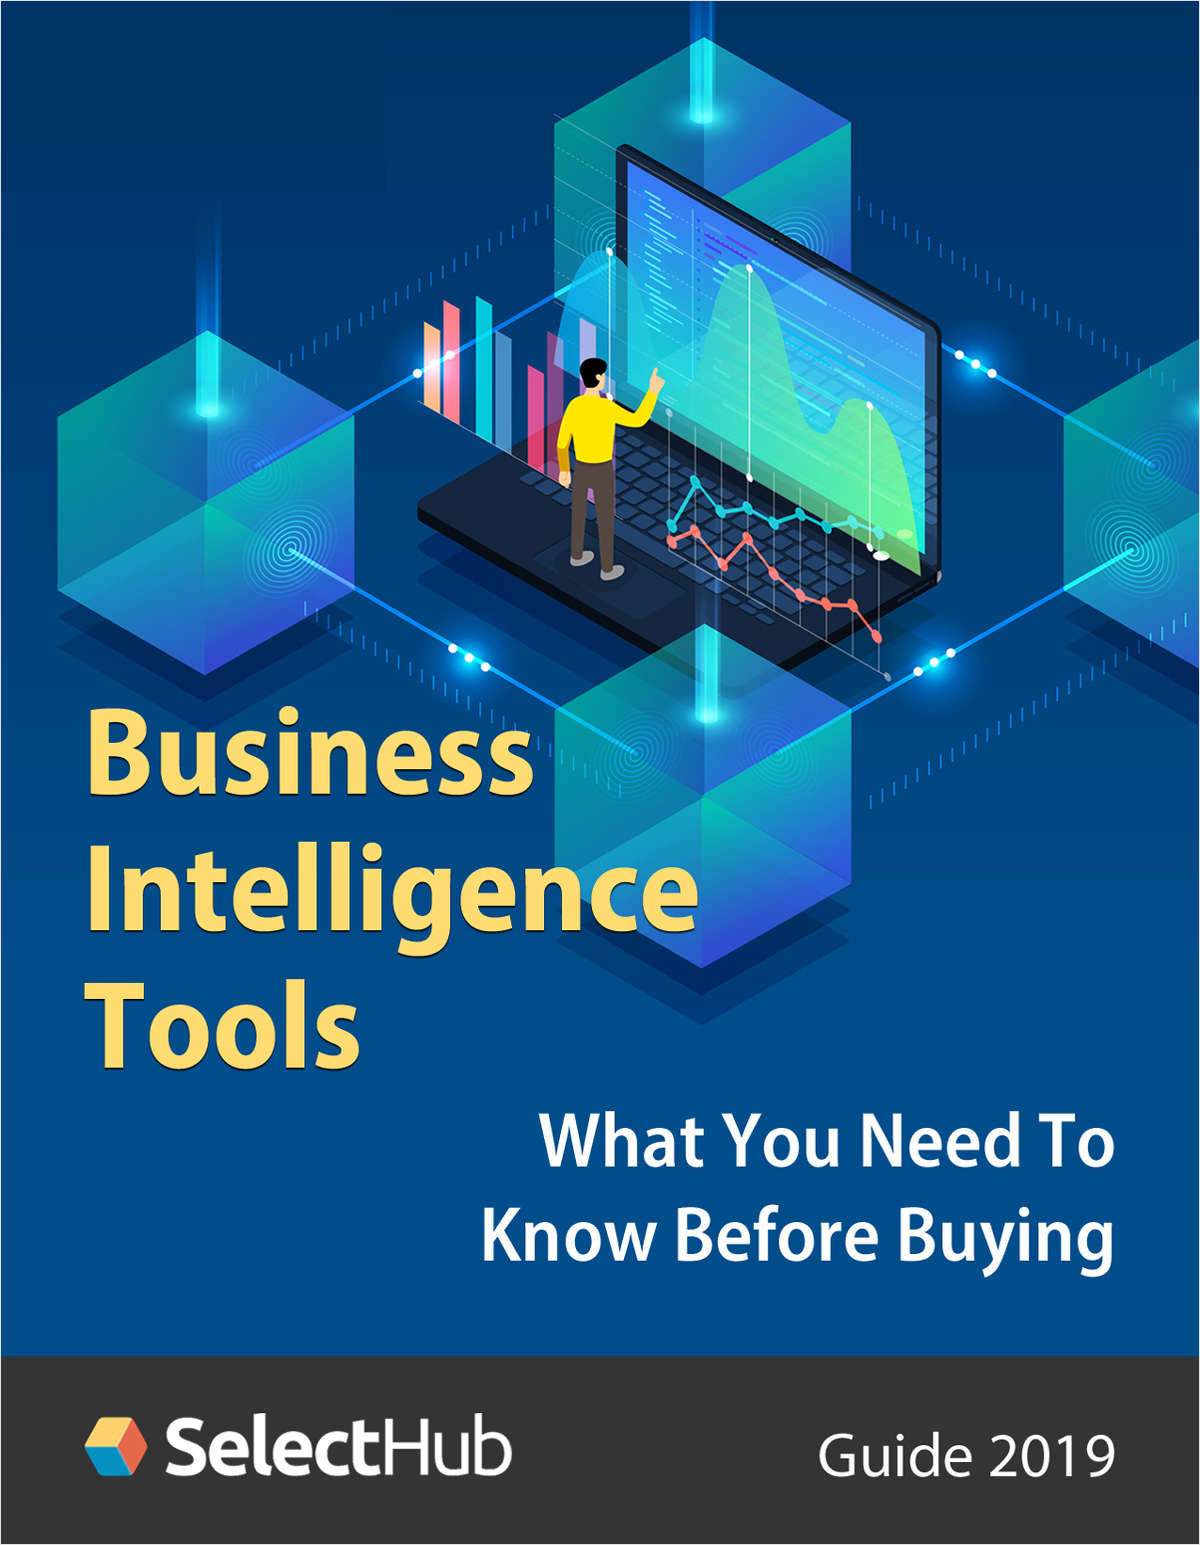 Business Intelligence Tools: What You Need to Know Before Buying